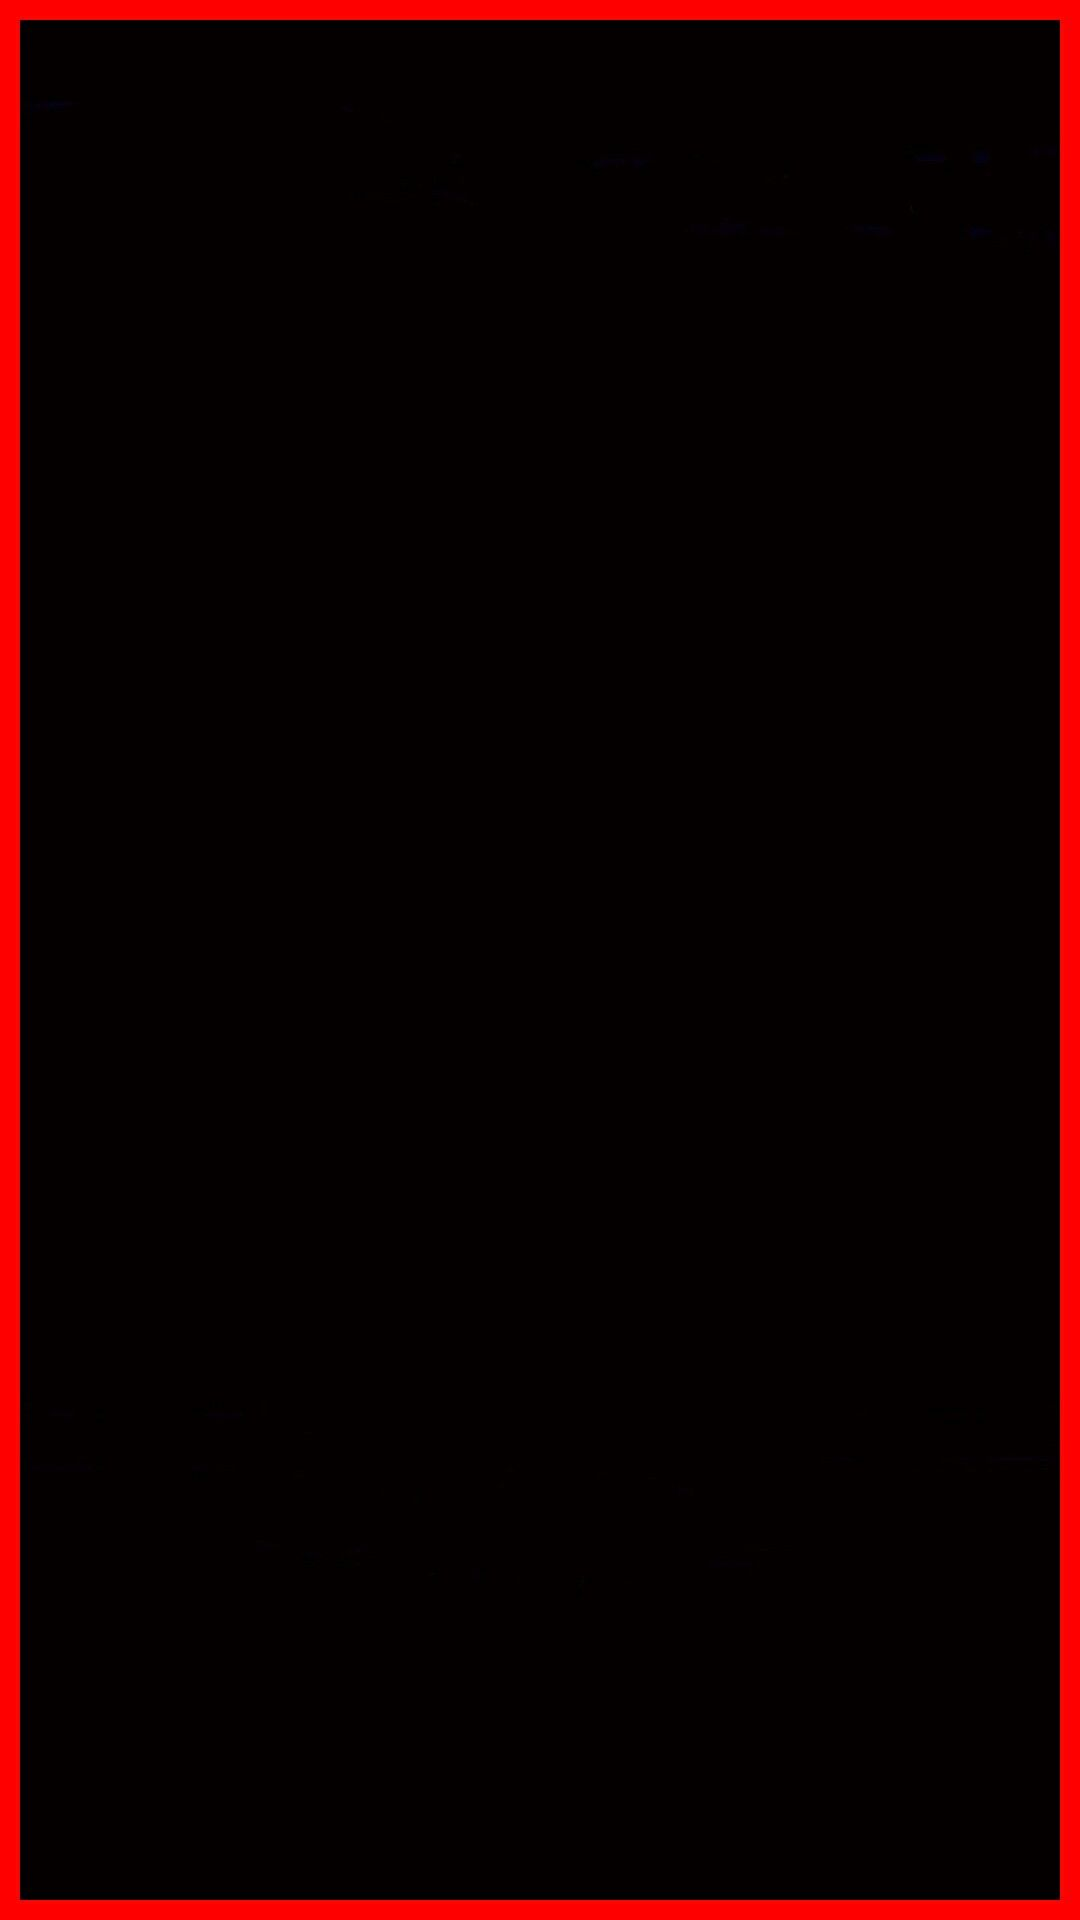 Red Border Wallpaper | *Black Wallpapers